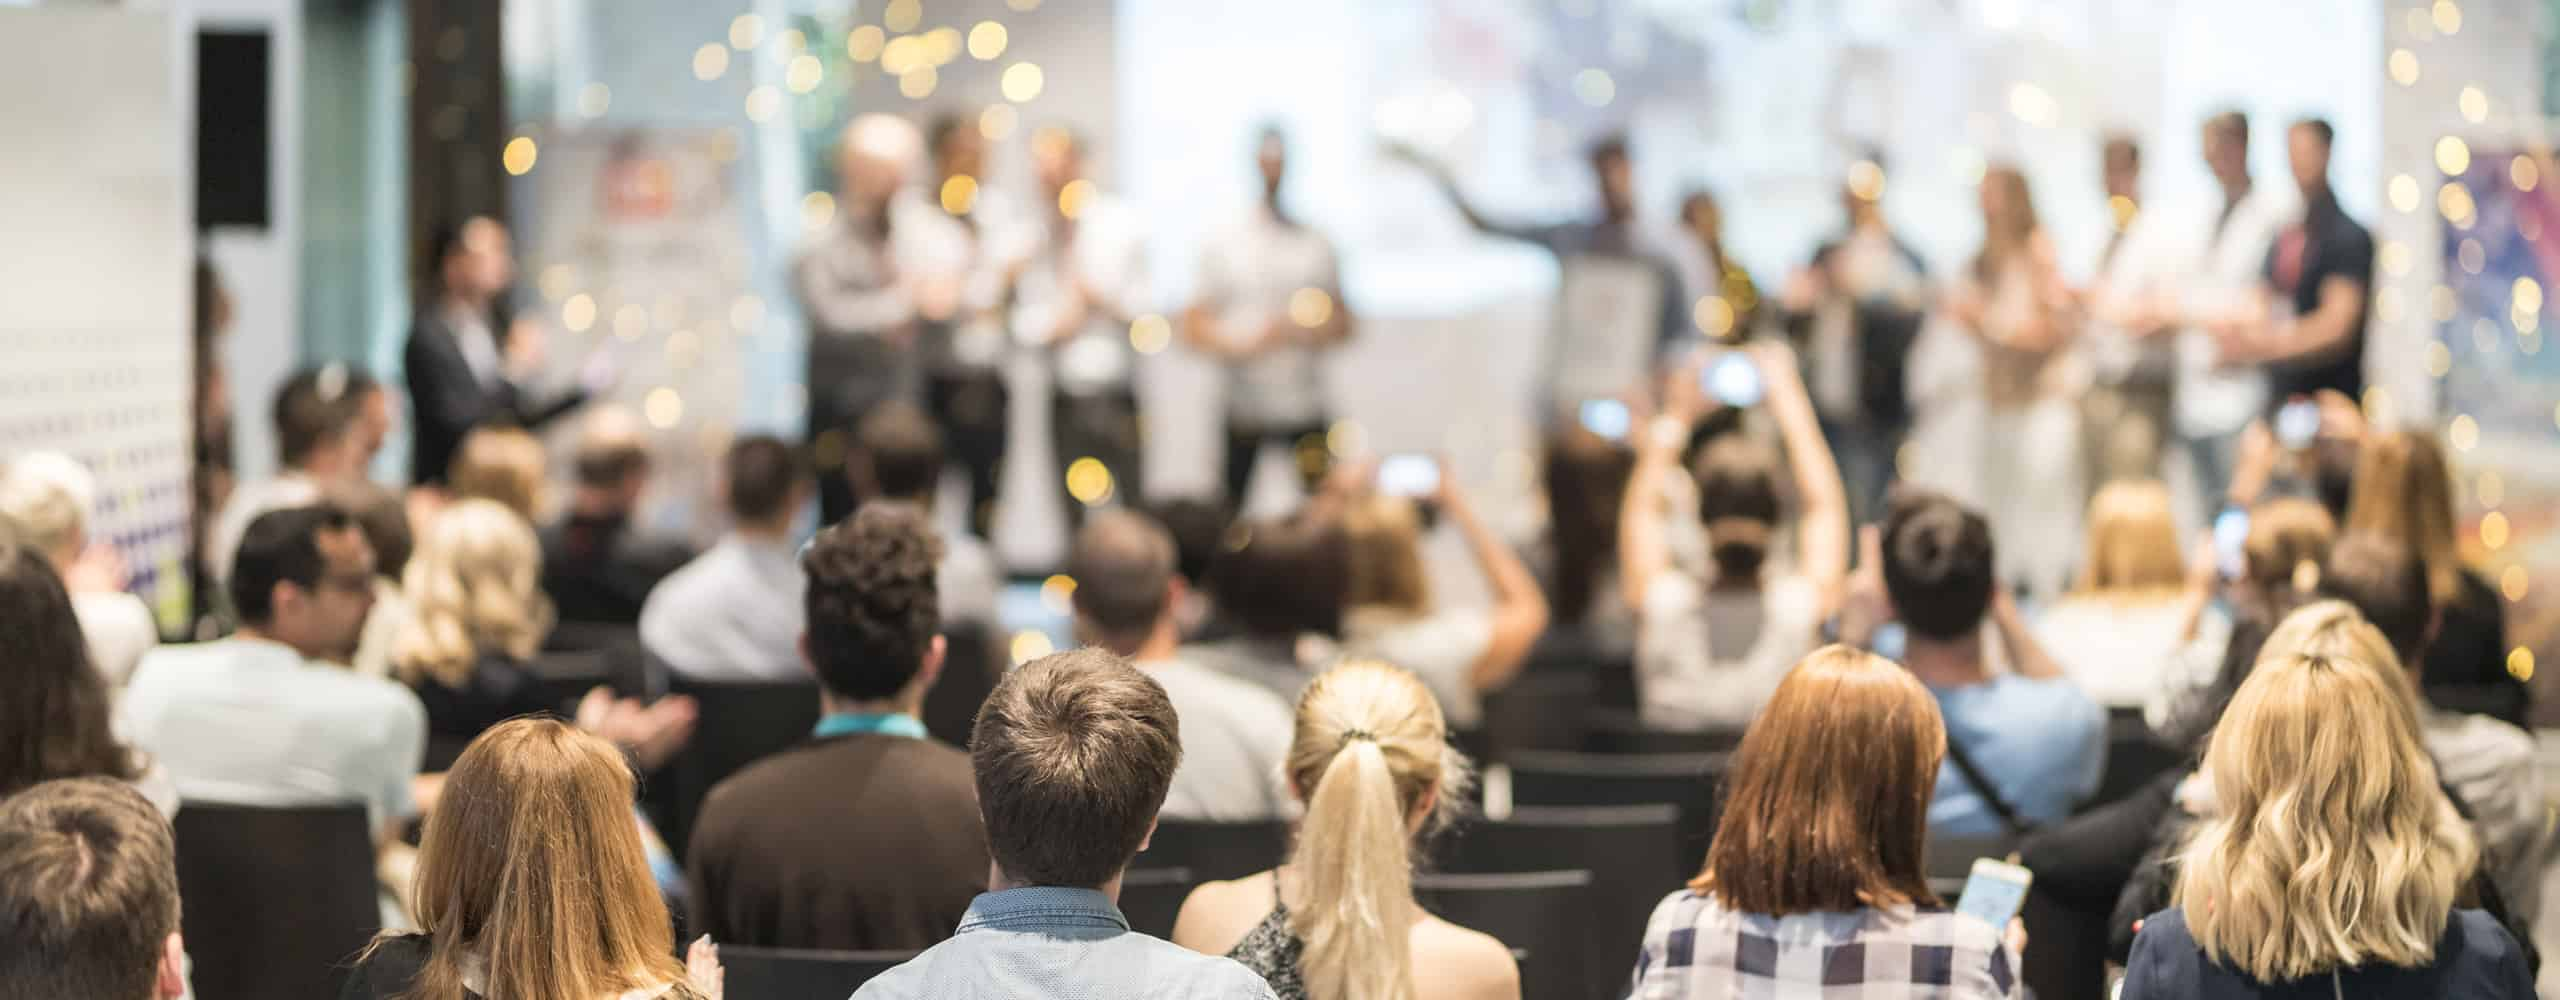 Destination Wedding In Kotor, Montenegro